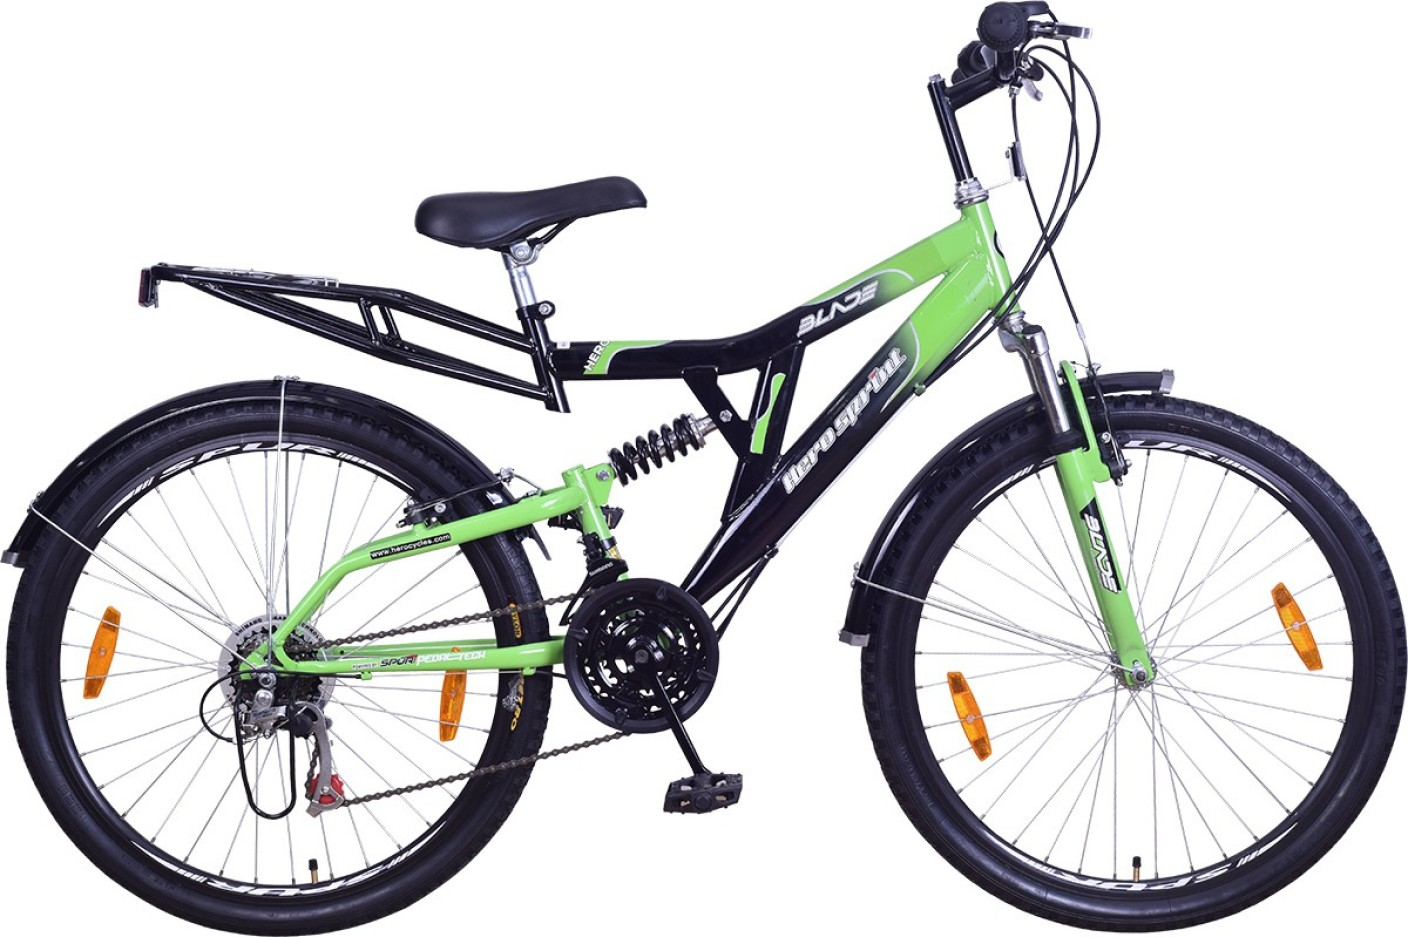 Hero Blade 26t 26 T 18 Speed Hybrid Cycle Price In India